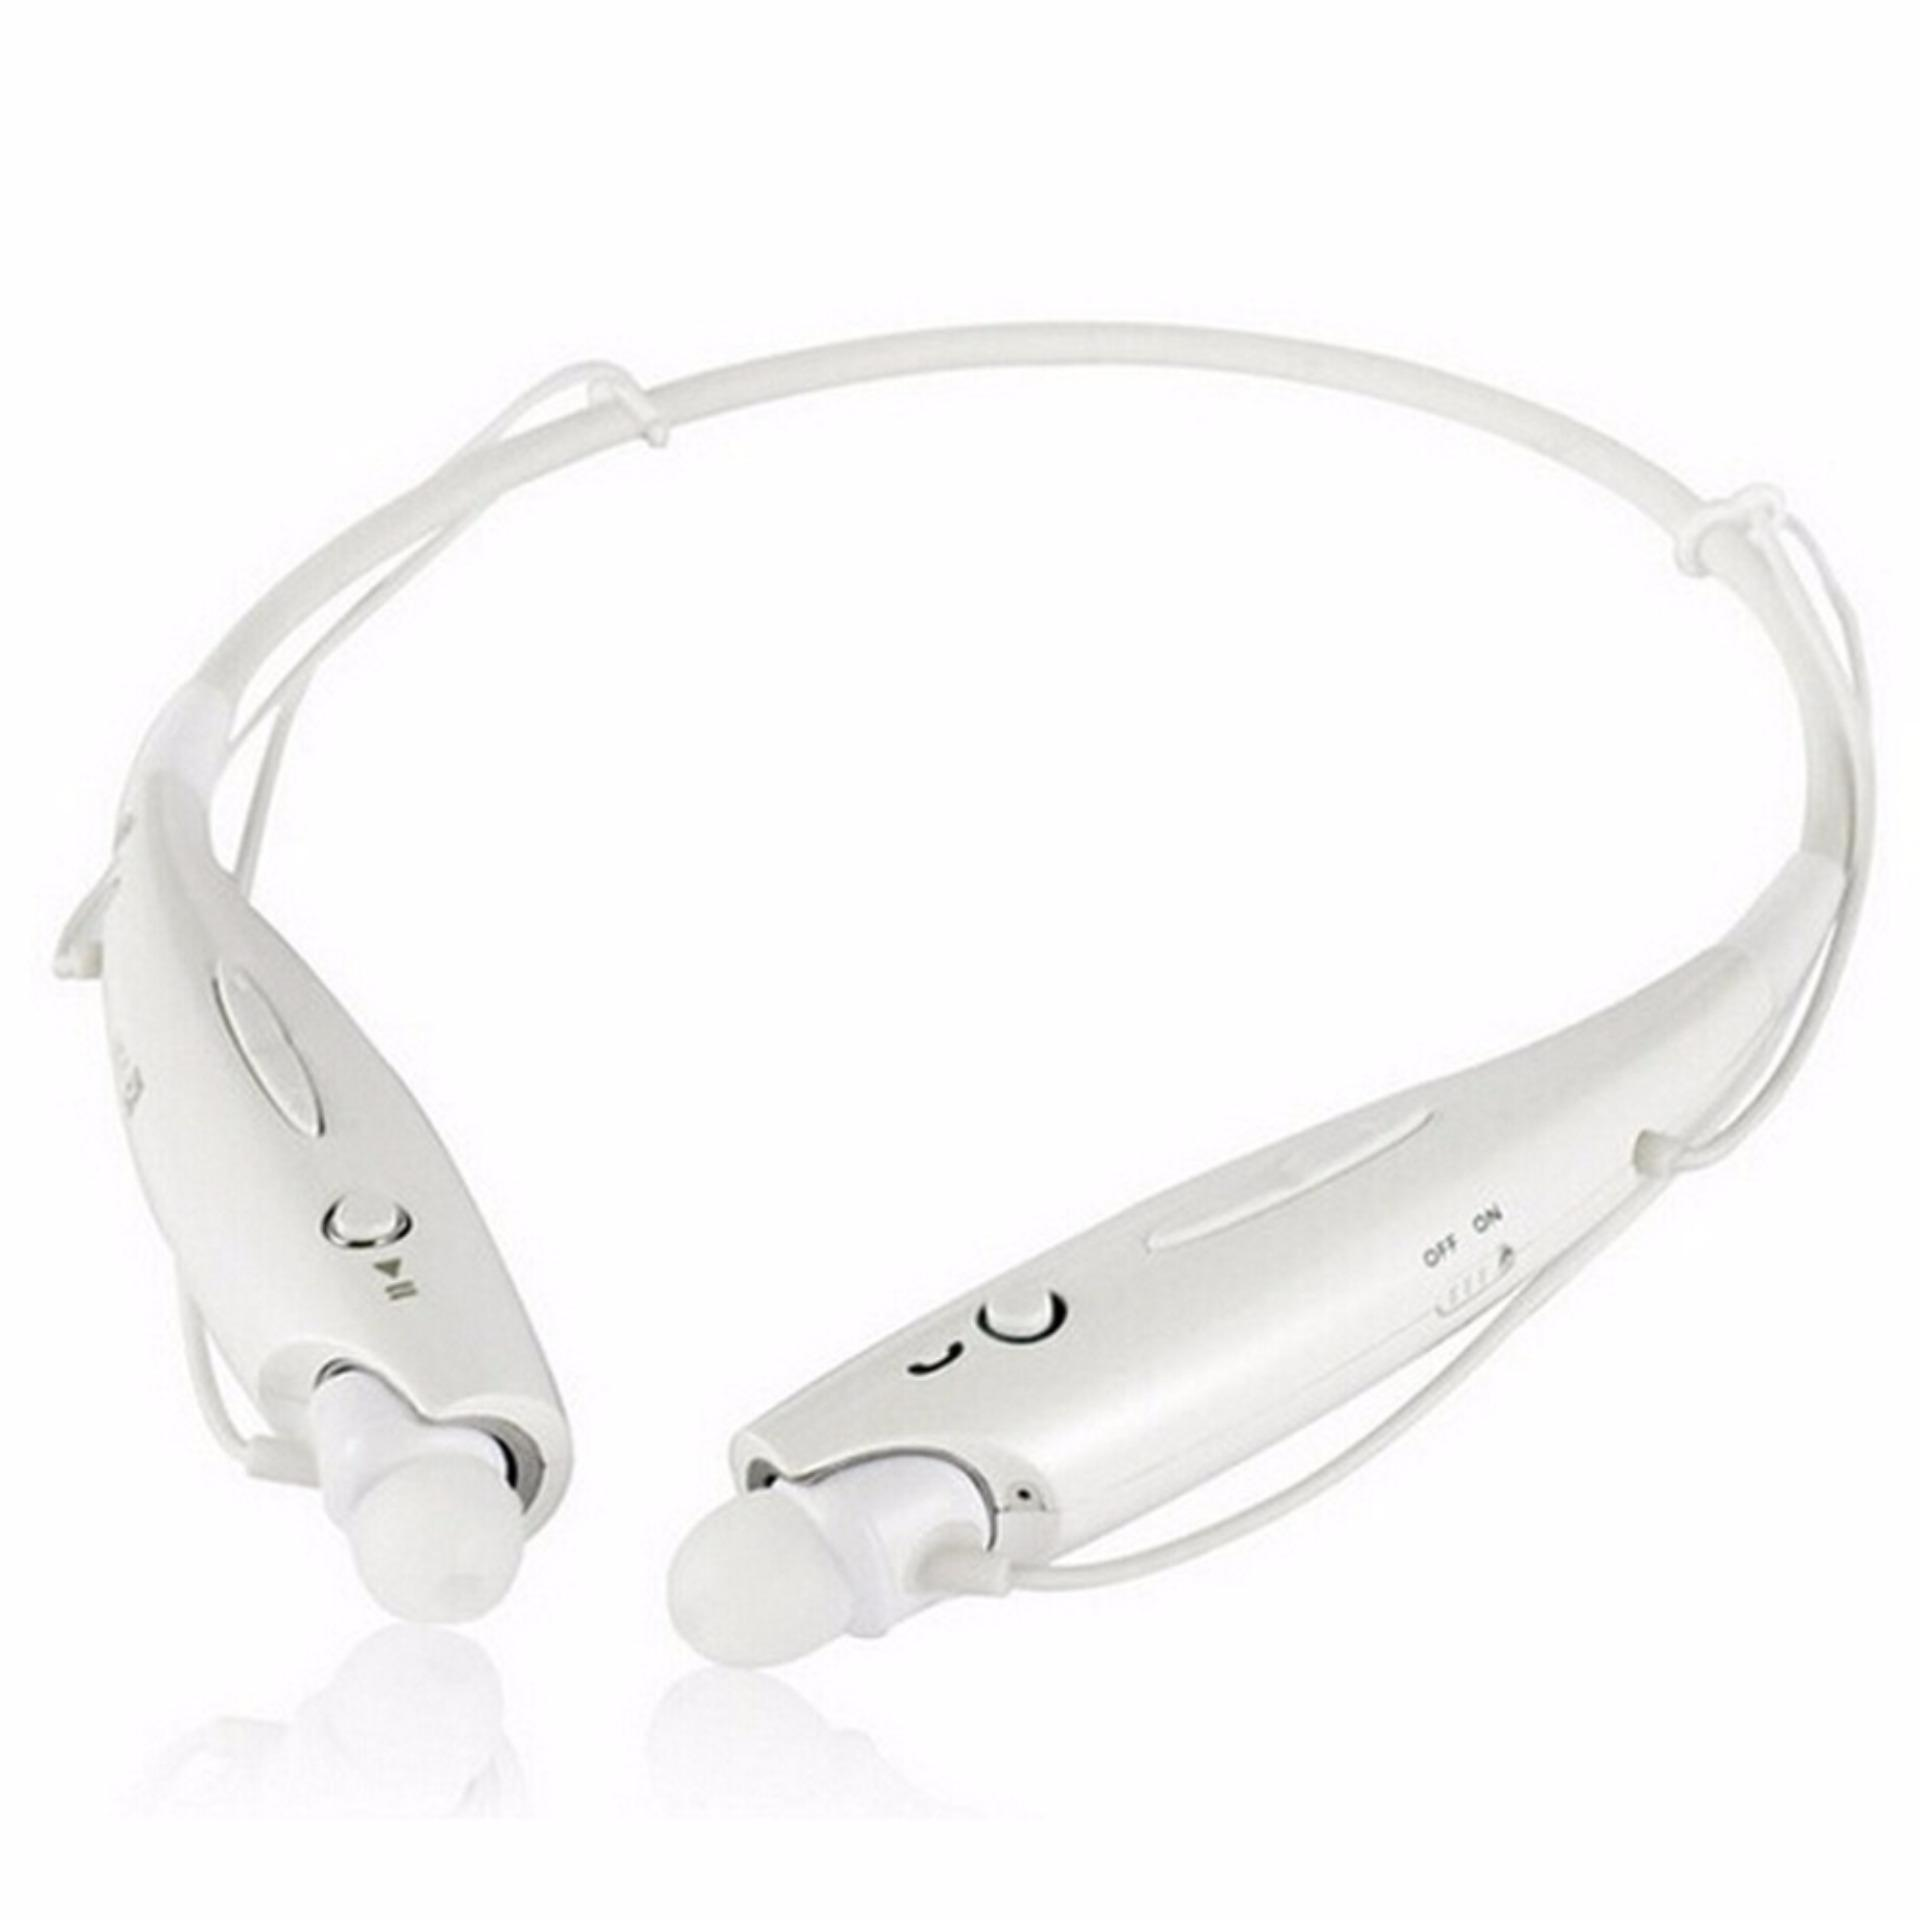 Harga Samsung Bluetooth Headset Two Channel Mp3 Music Headphone Hbs 730 Fullset Murah